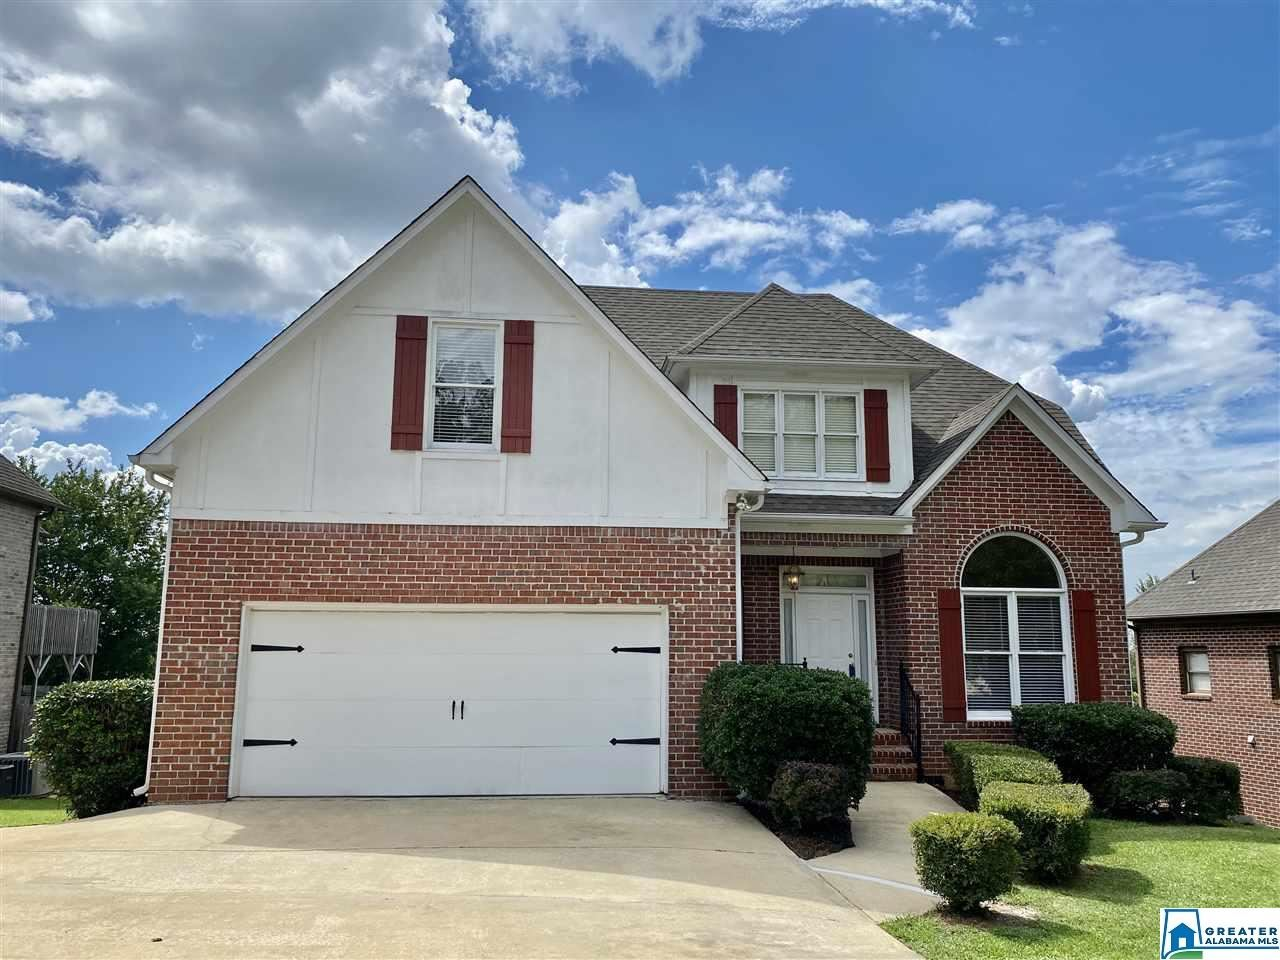 6441 RIDGE VIEW CIR, Bessemer, AL 35022 - #: 887766